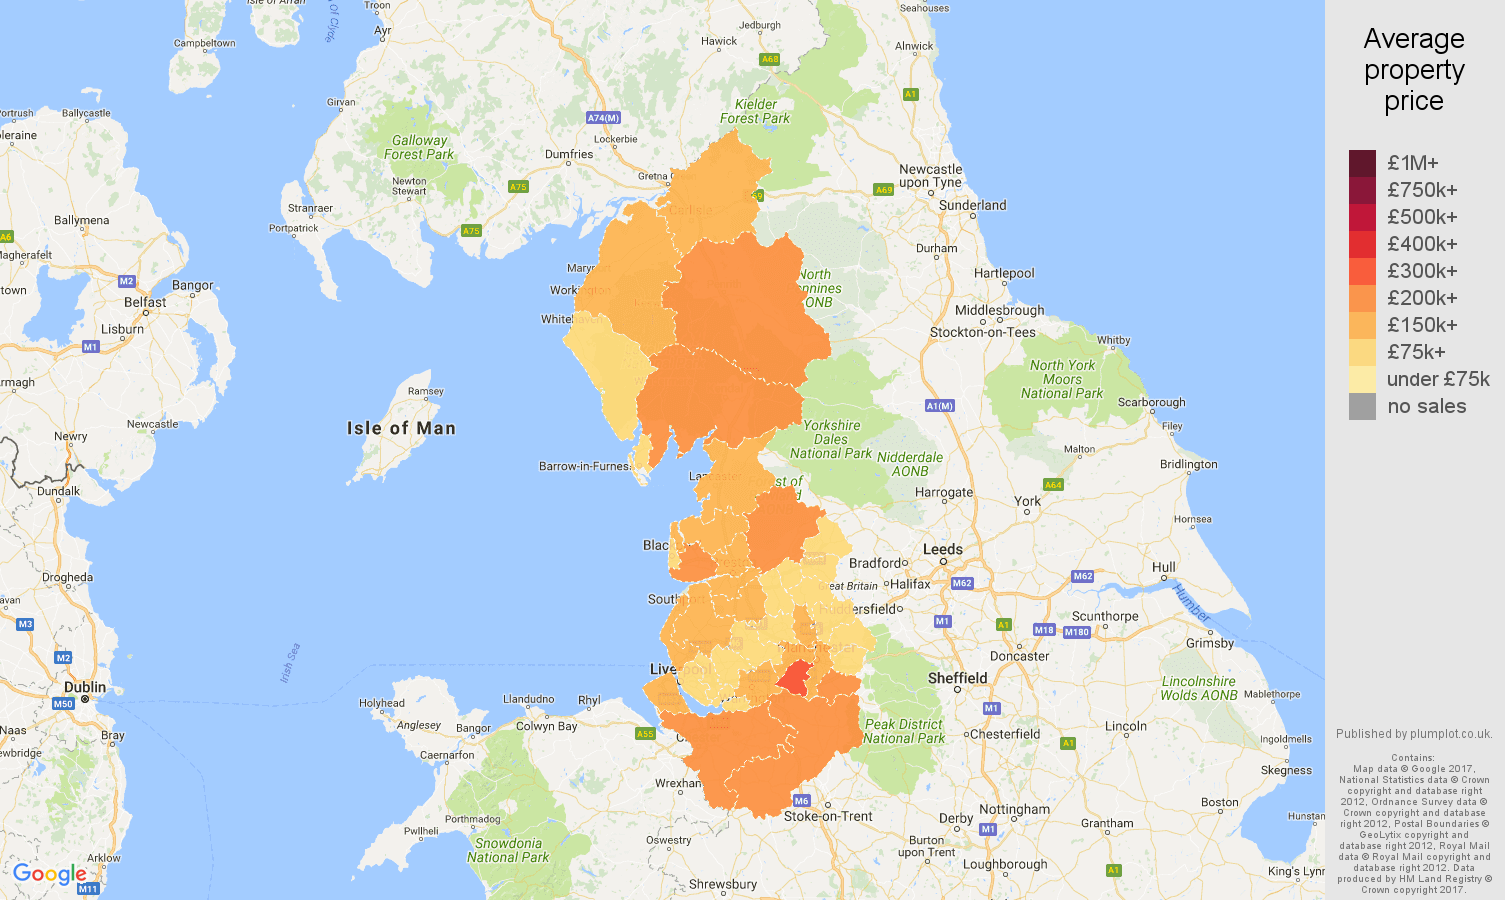 North Of England Map.North West England House Prices In Maps And Graphs